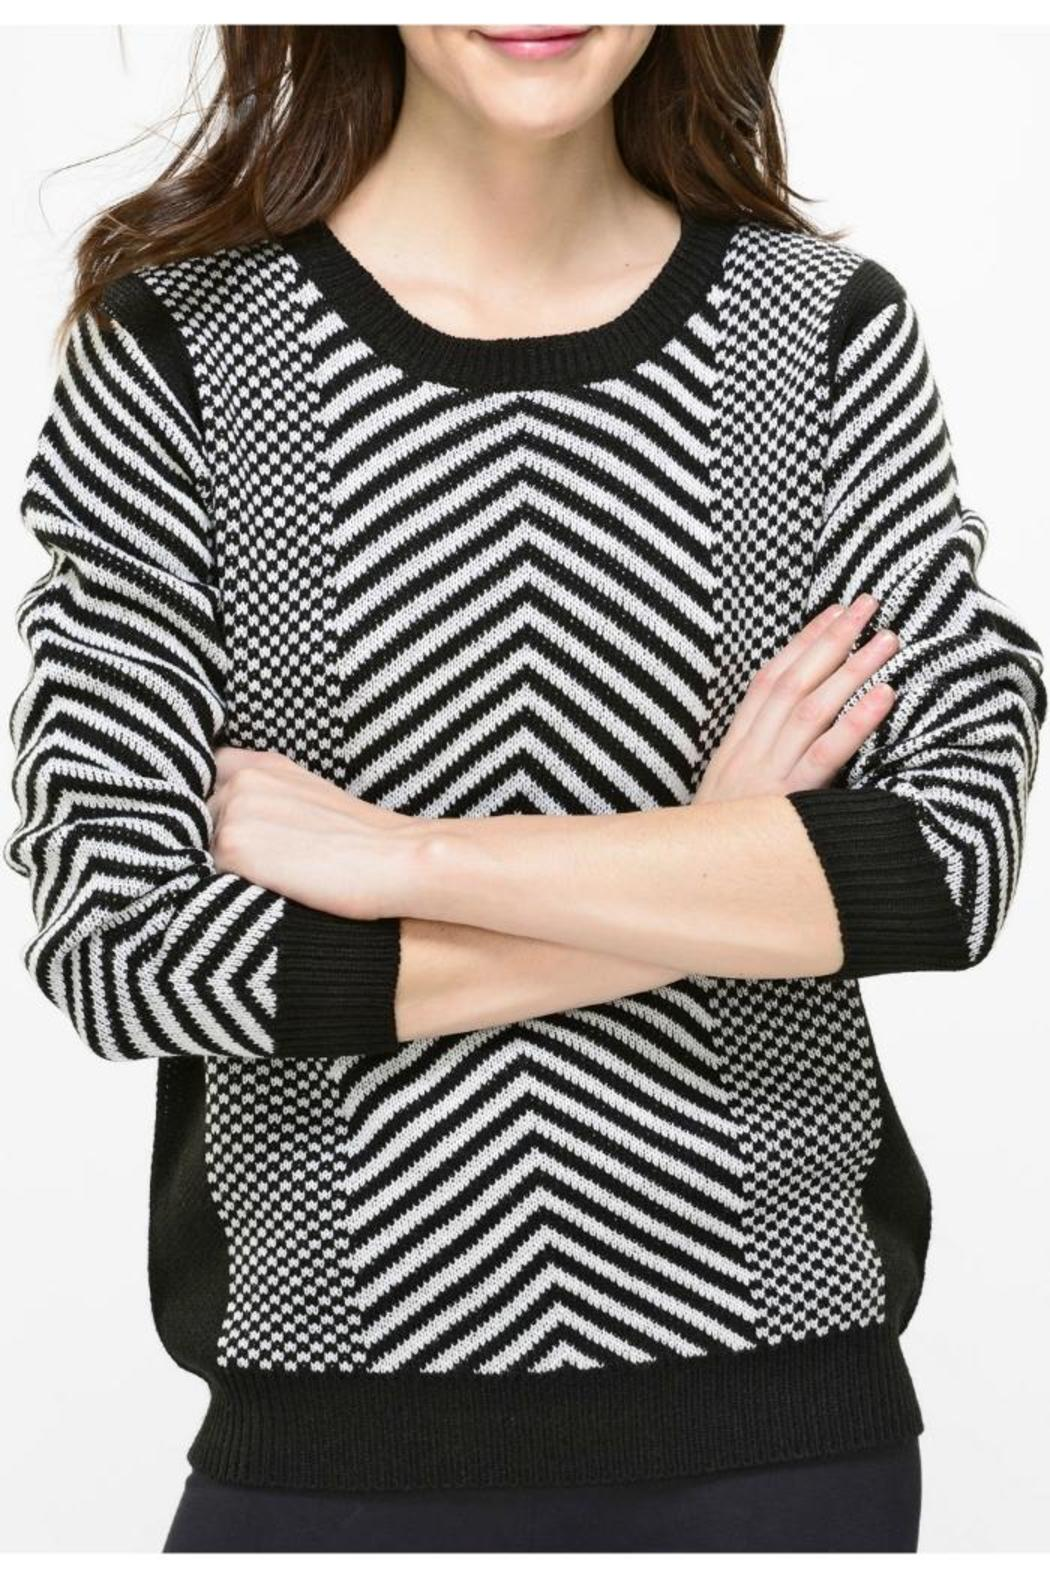 The black and white clothing collection from Banana Republic feature elegant creations for both casual and dressy occasion. Charming black and white clothing for women offers dresses and skirts to exude a powerful, sleek look.